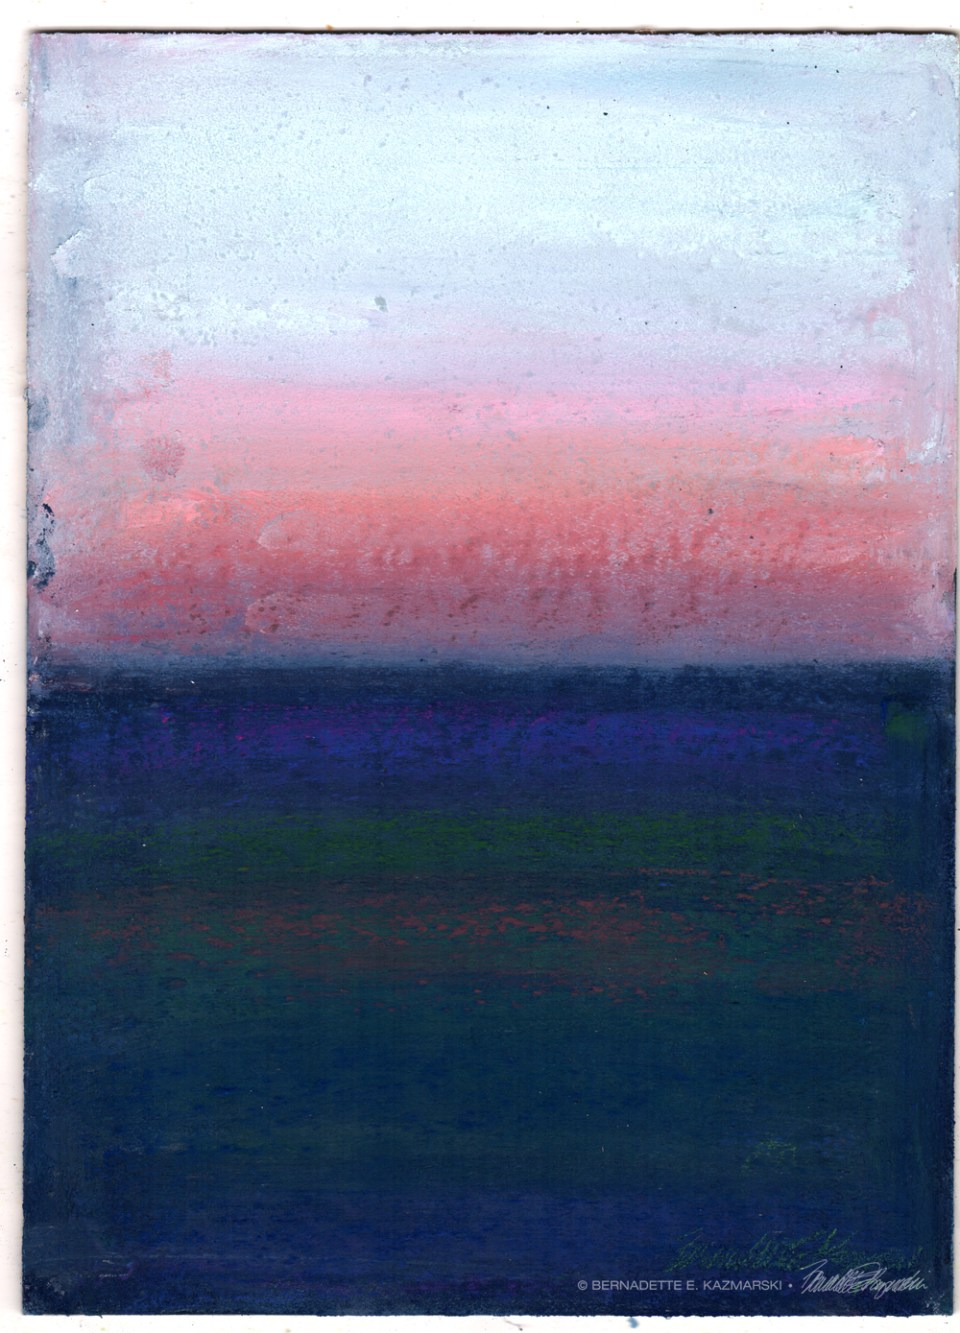 Winter Sunset, After Rothko, pastel on prepared board, 8 x 11 © Bernadette E. Kazmarski